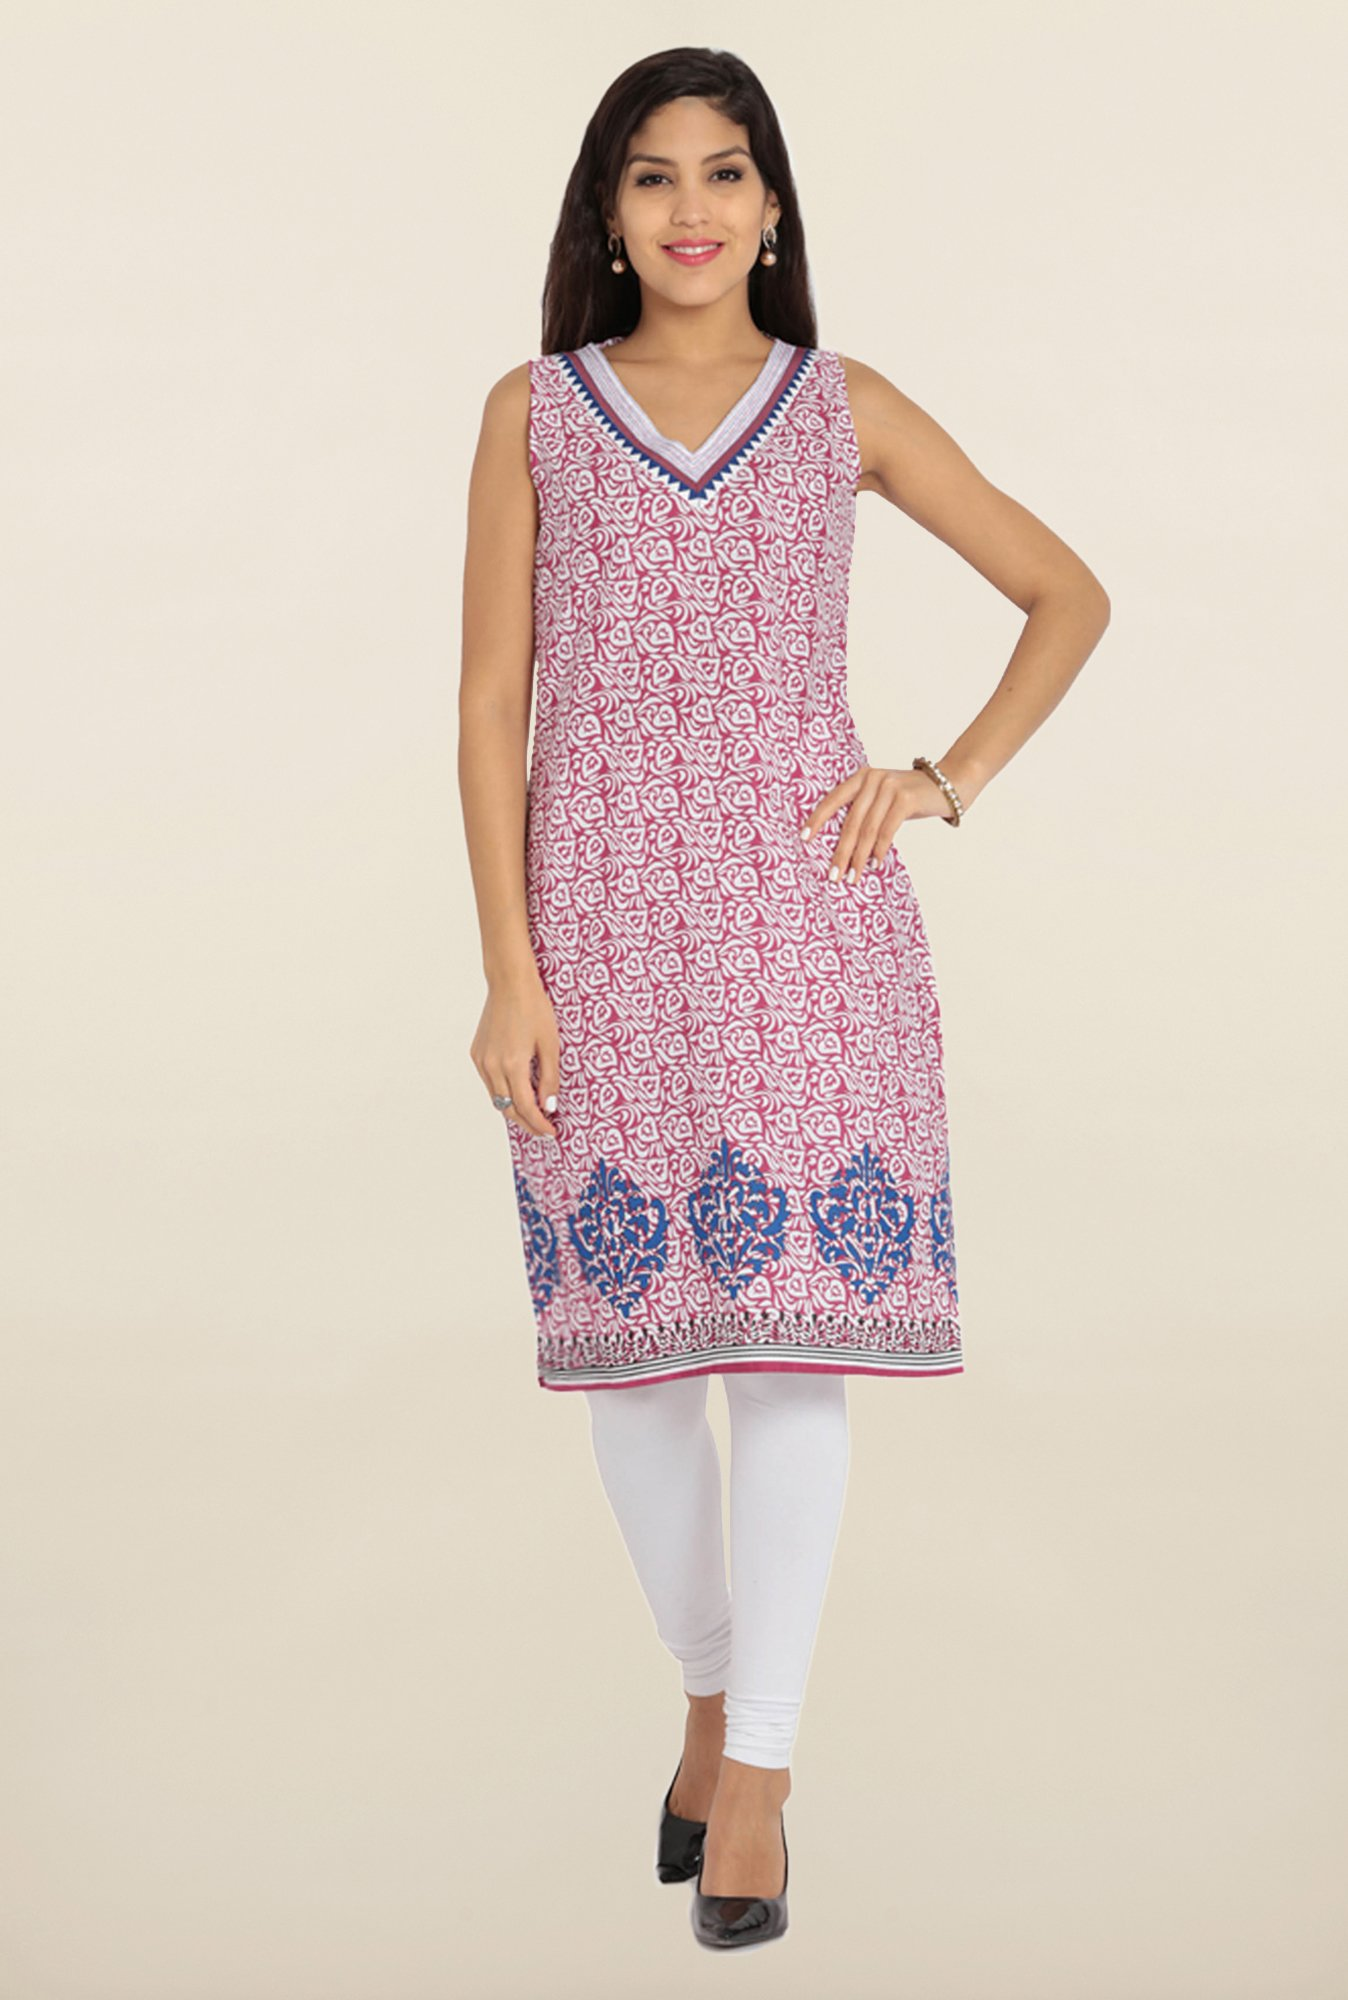 Soch Purple & White Printed Cotton Kurta